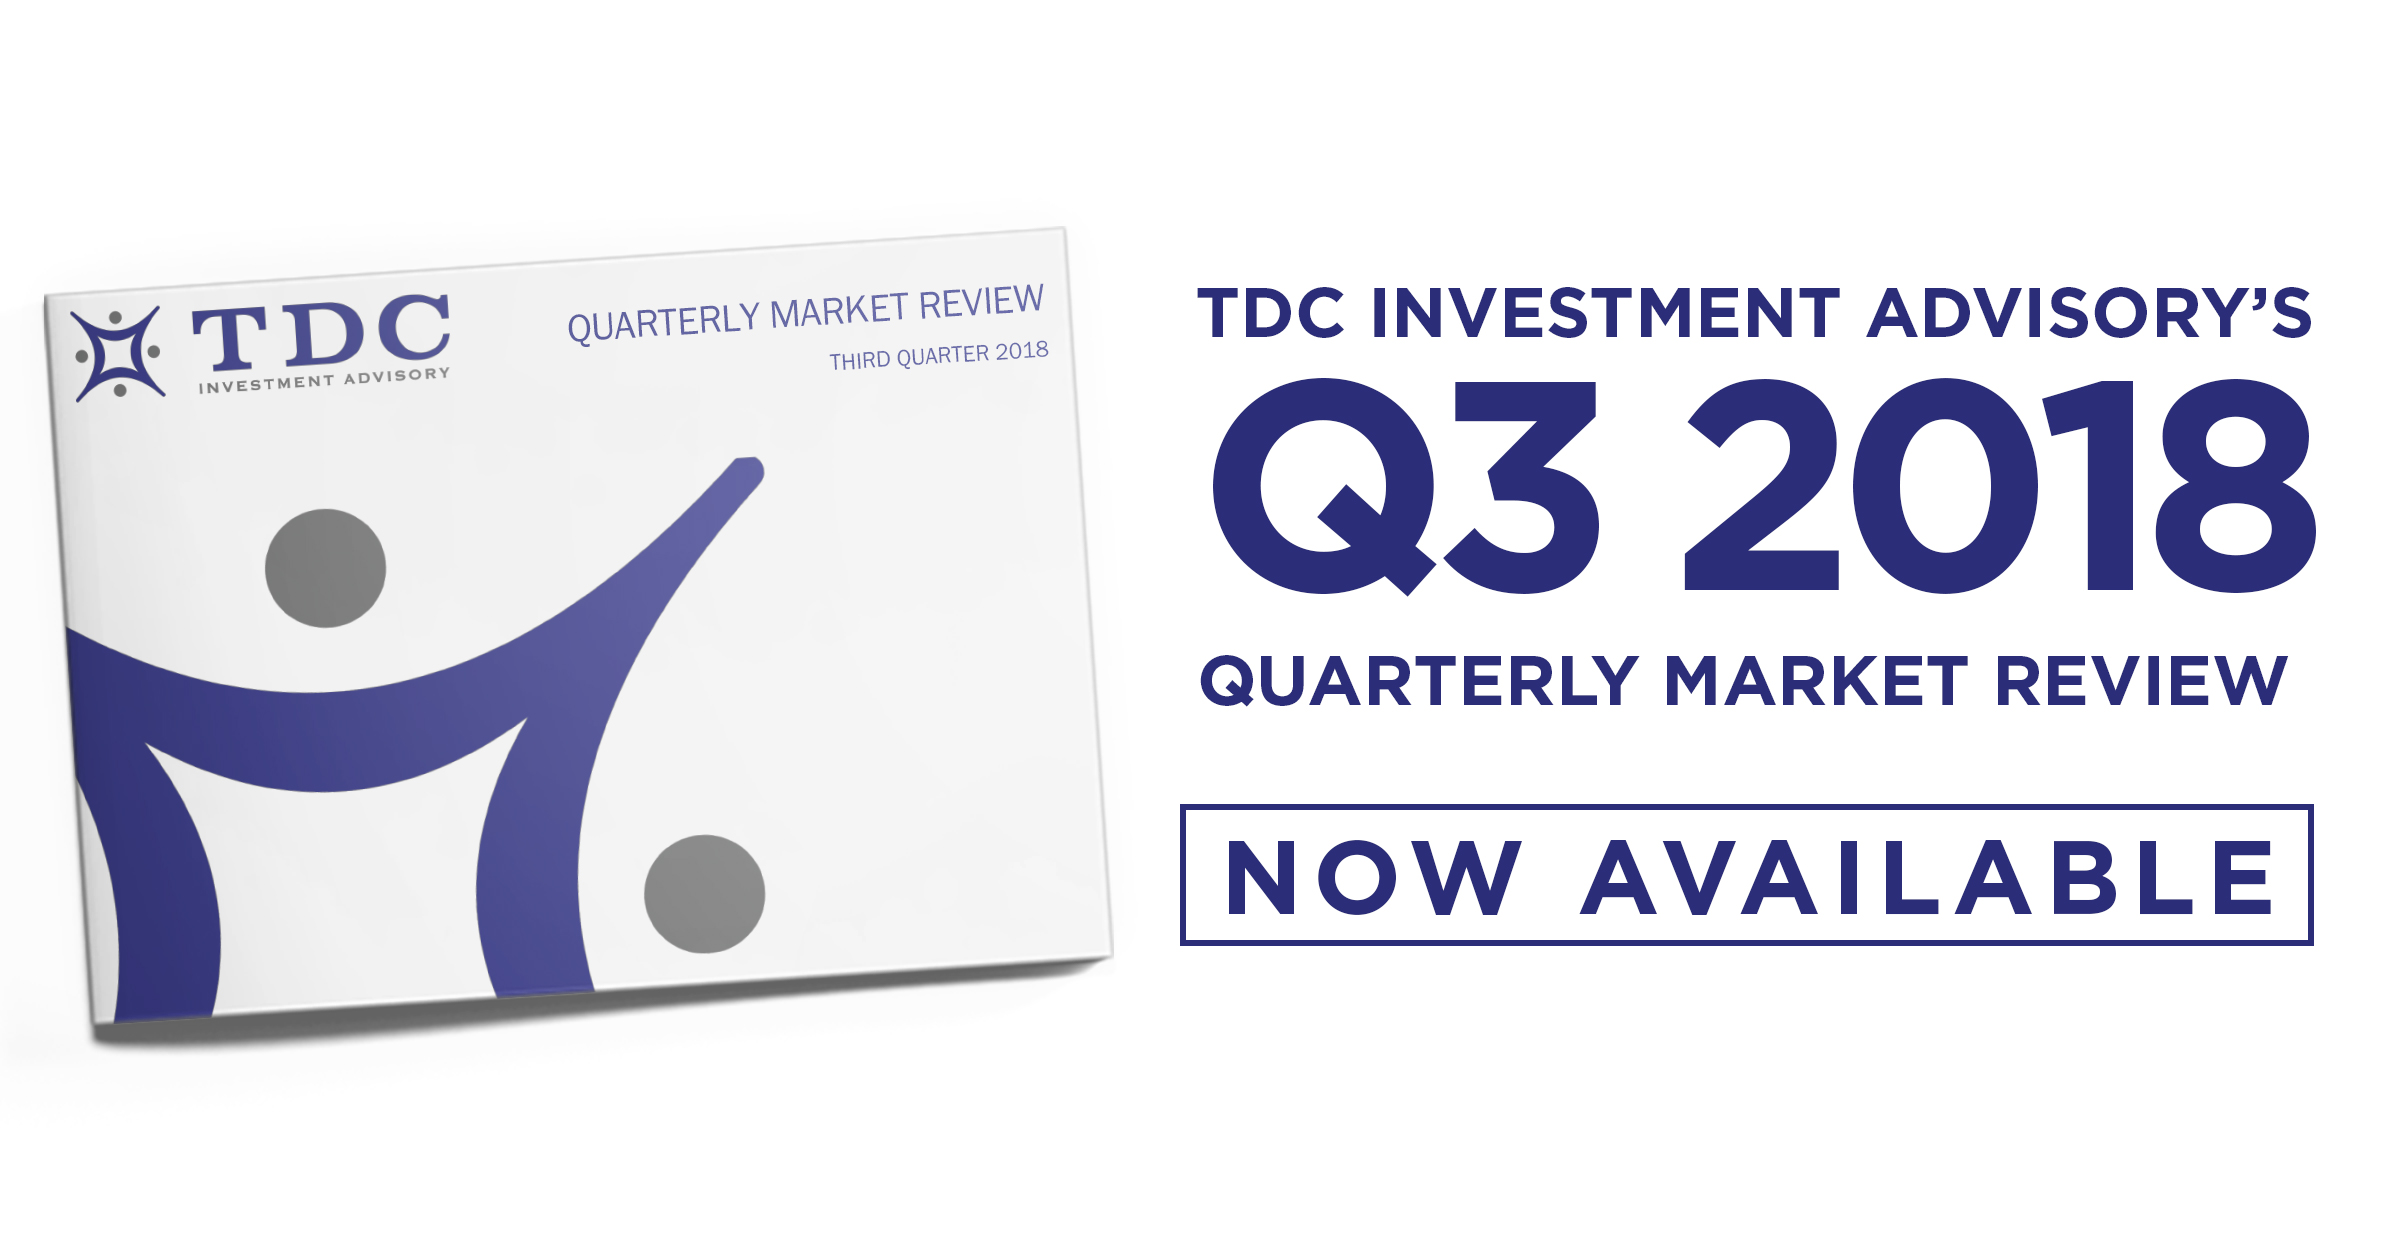 TDC's Quarterly Market Review for Q3 2018 is Now Available